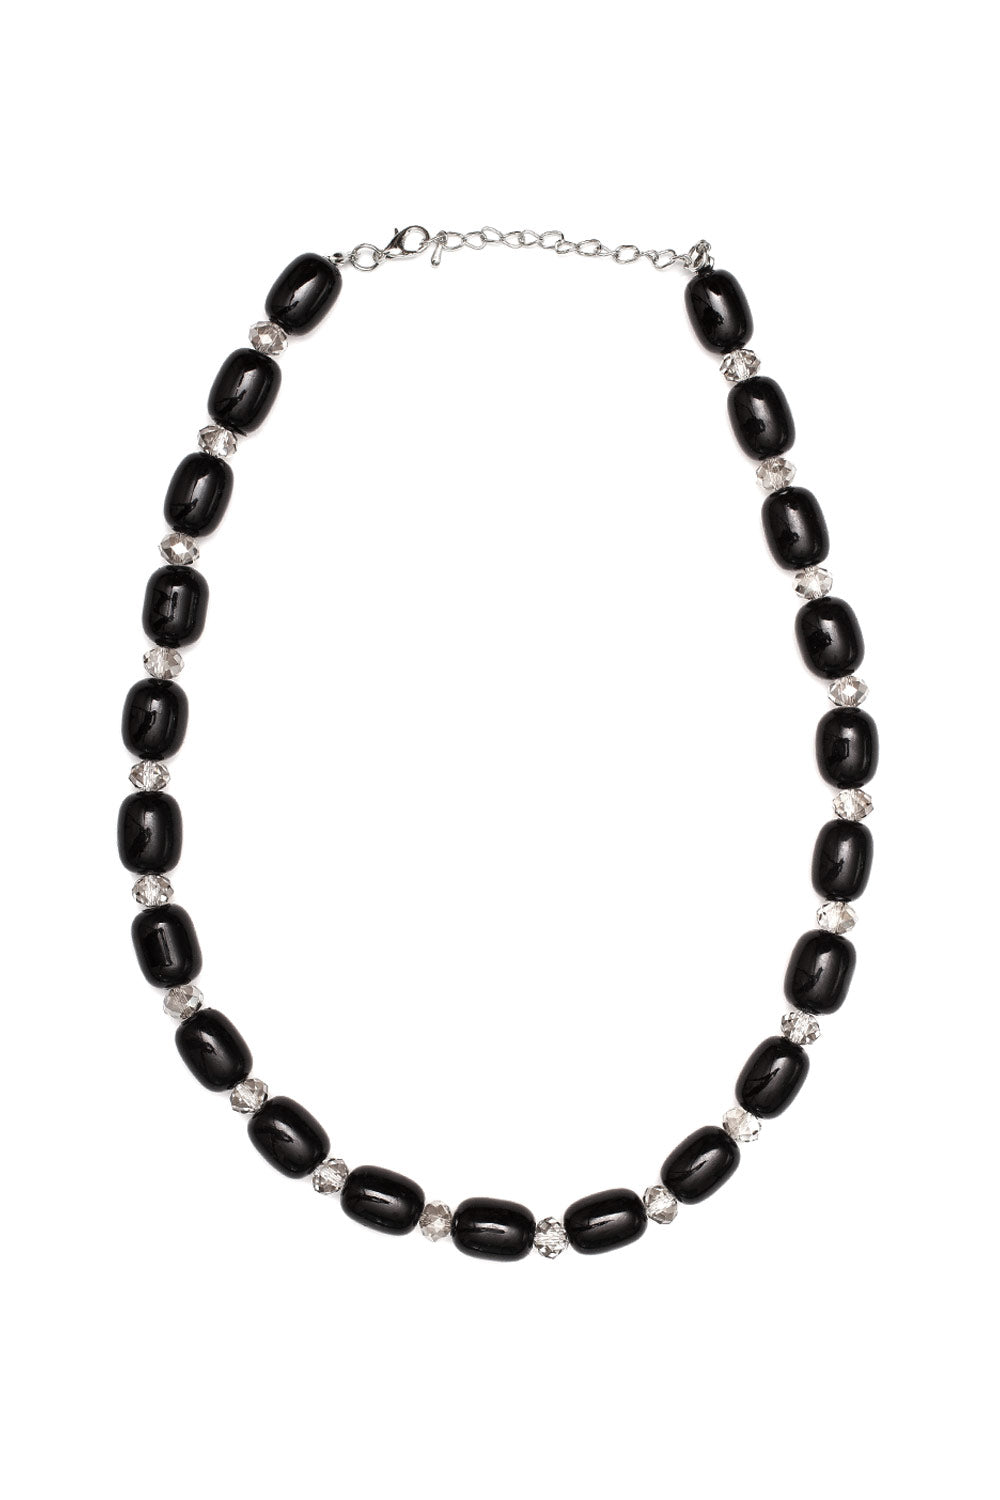 Type 4 Onyx Orbit Necklace